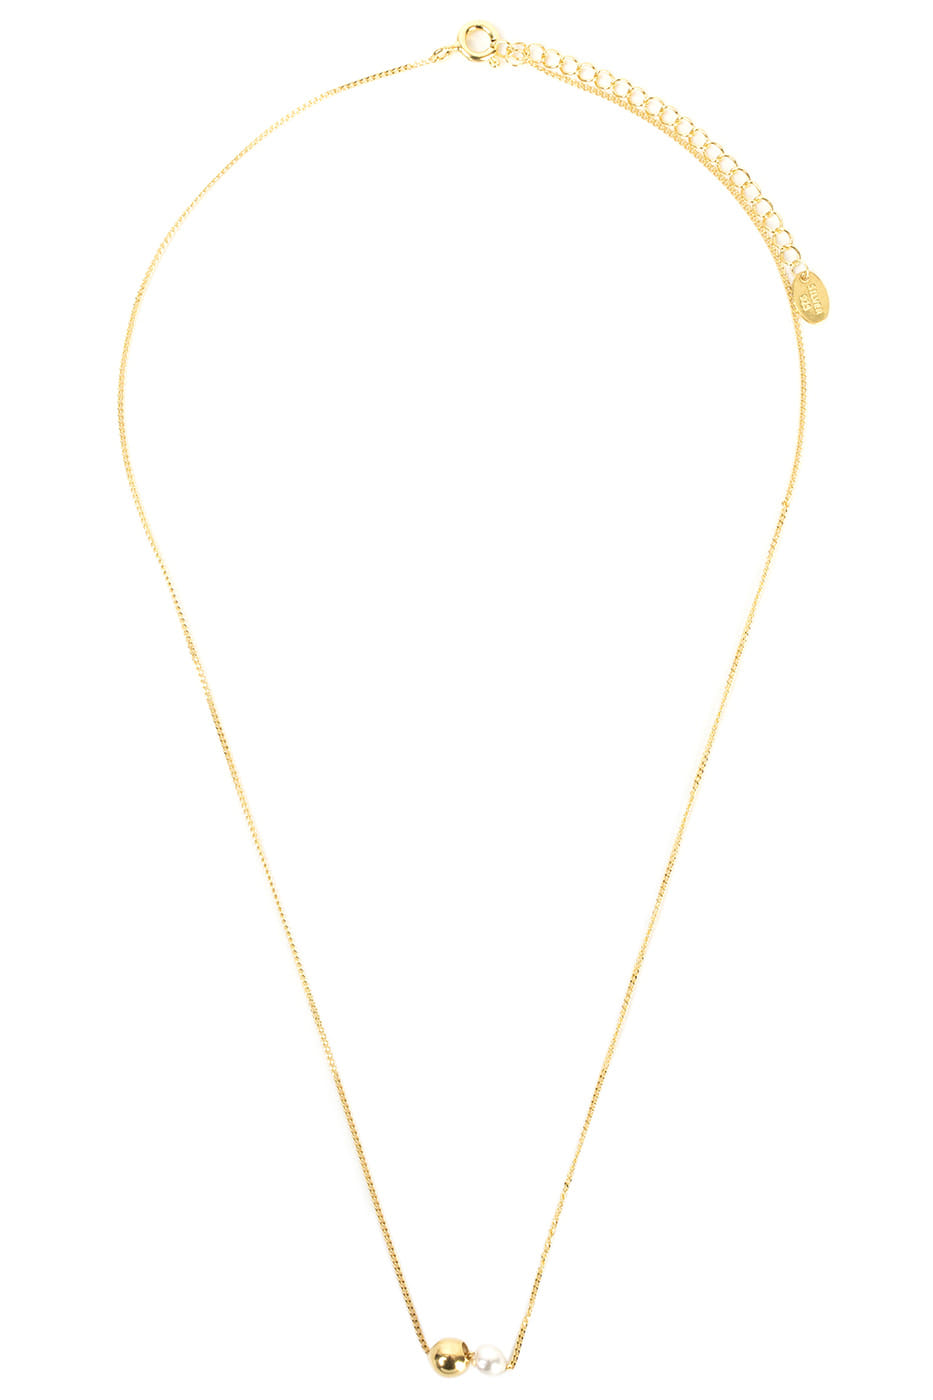 Nt pearl necklace